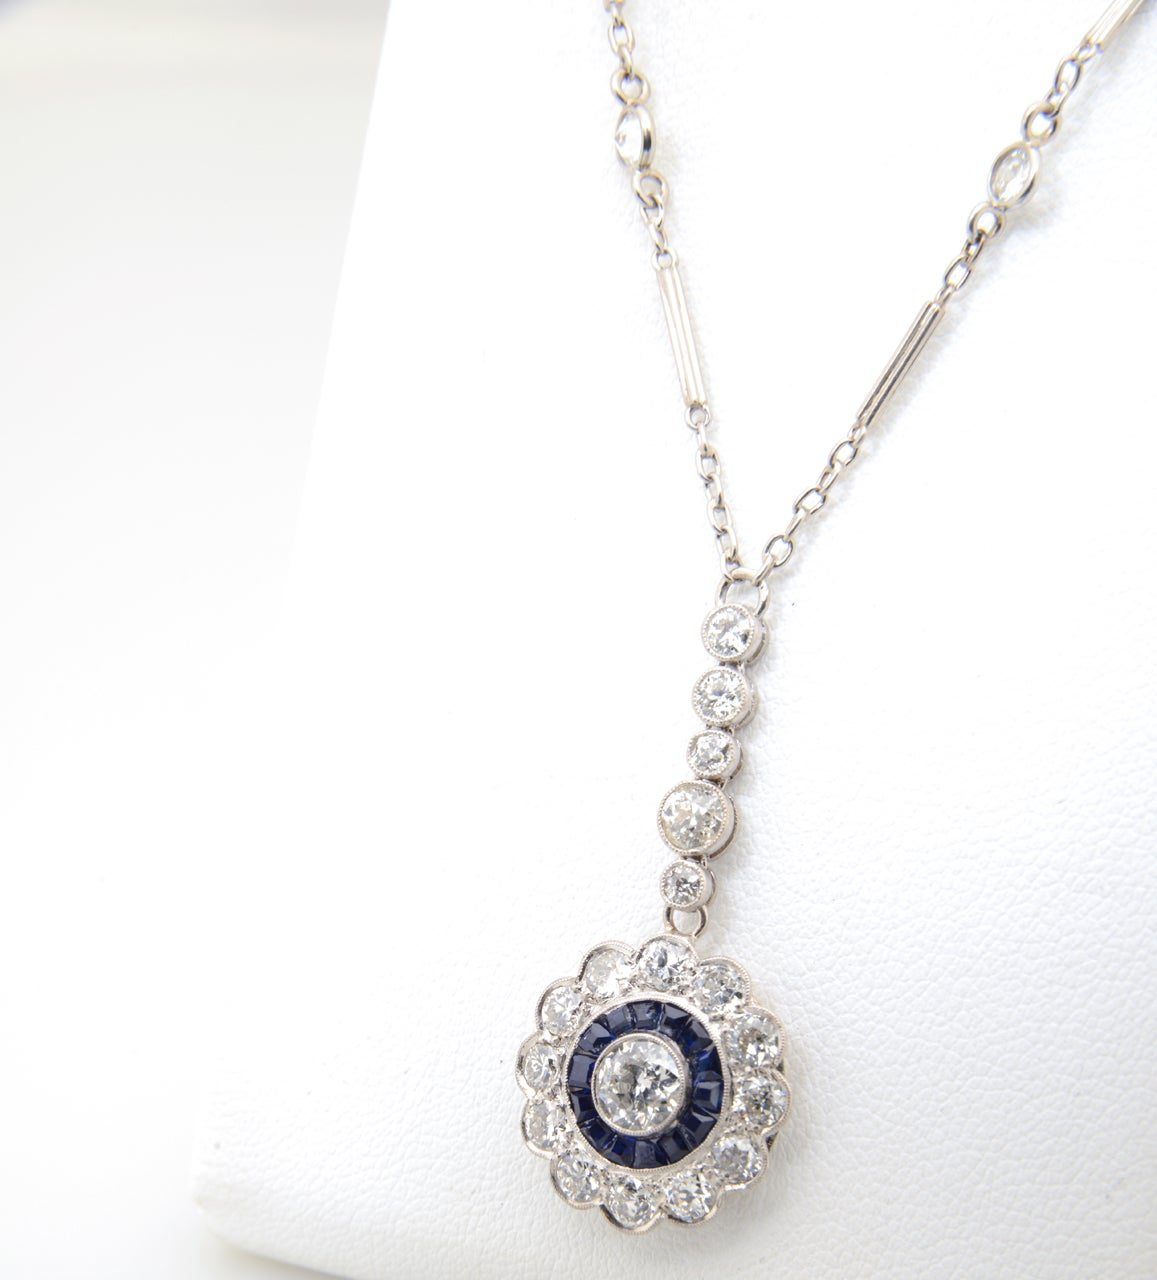 Finely made Art Deco diamond flower with a channel set sapphire ring around a .50 carat European cut diamond (approximate weight). The diamonds in the petals and drop are approximately another 1.5 carats.   The pendant measures  1 1/2